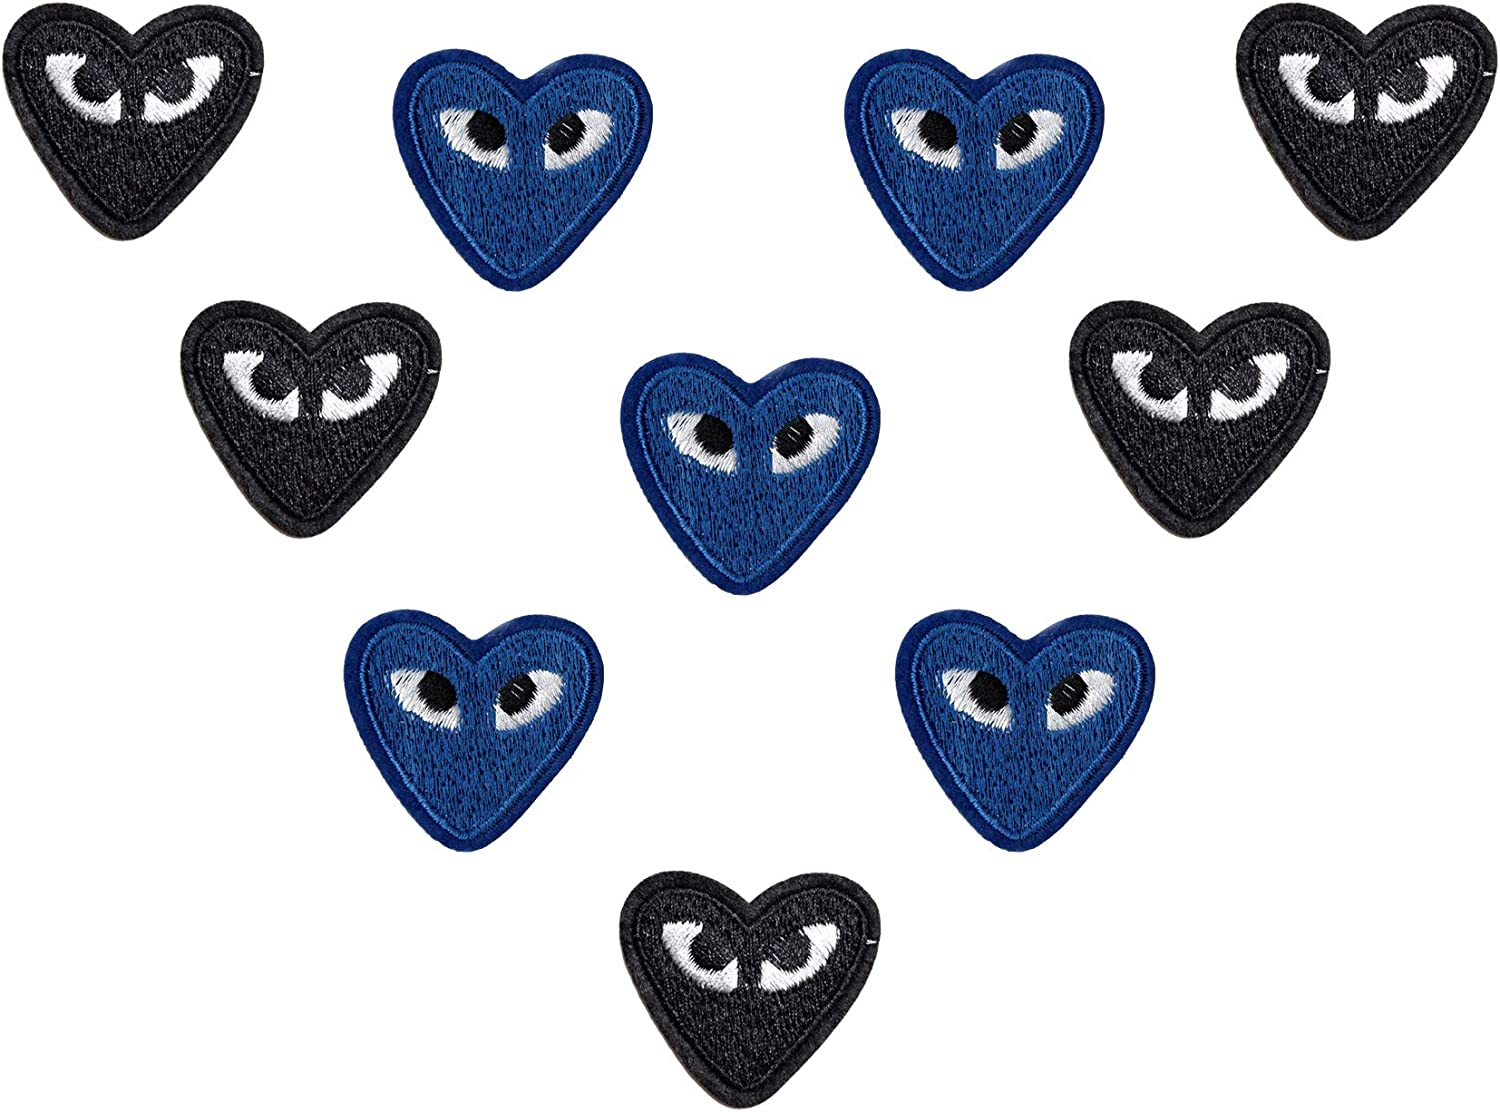 Bule and Black 10 Pcs Cartoon Love Heart Patches Eyes Cute Embroidered Appliques DIY Crafts 2 Colors Iron On Patches